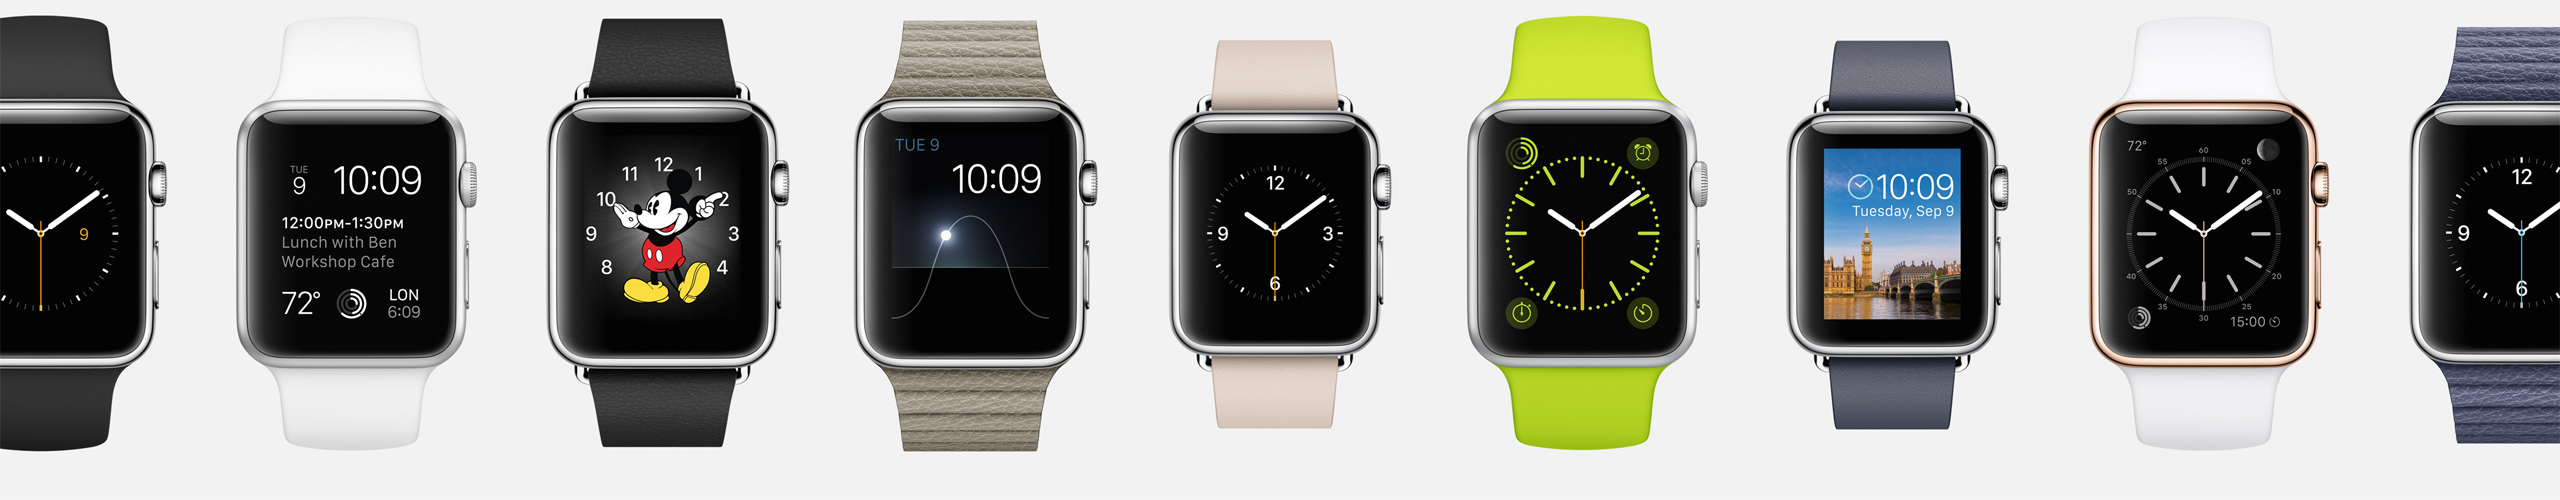 customiser l'Apple Watch